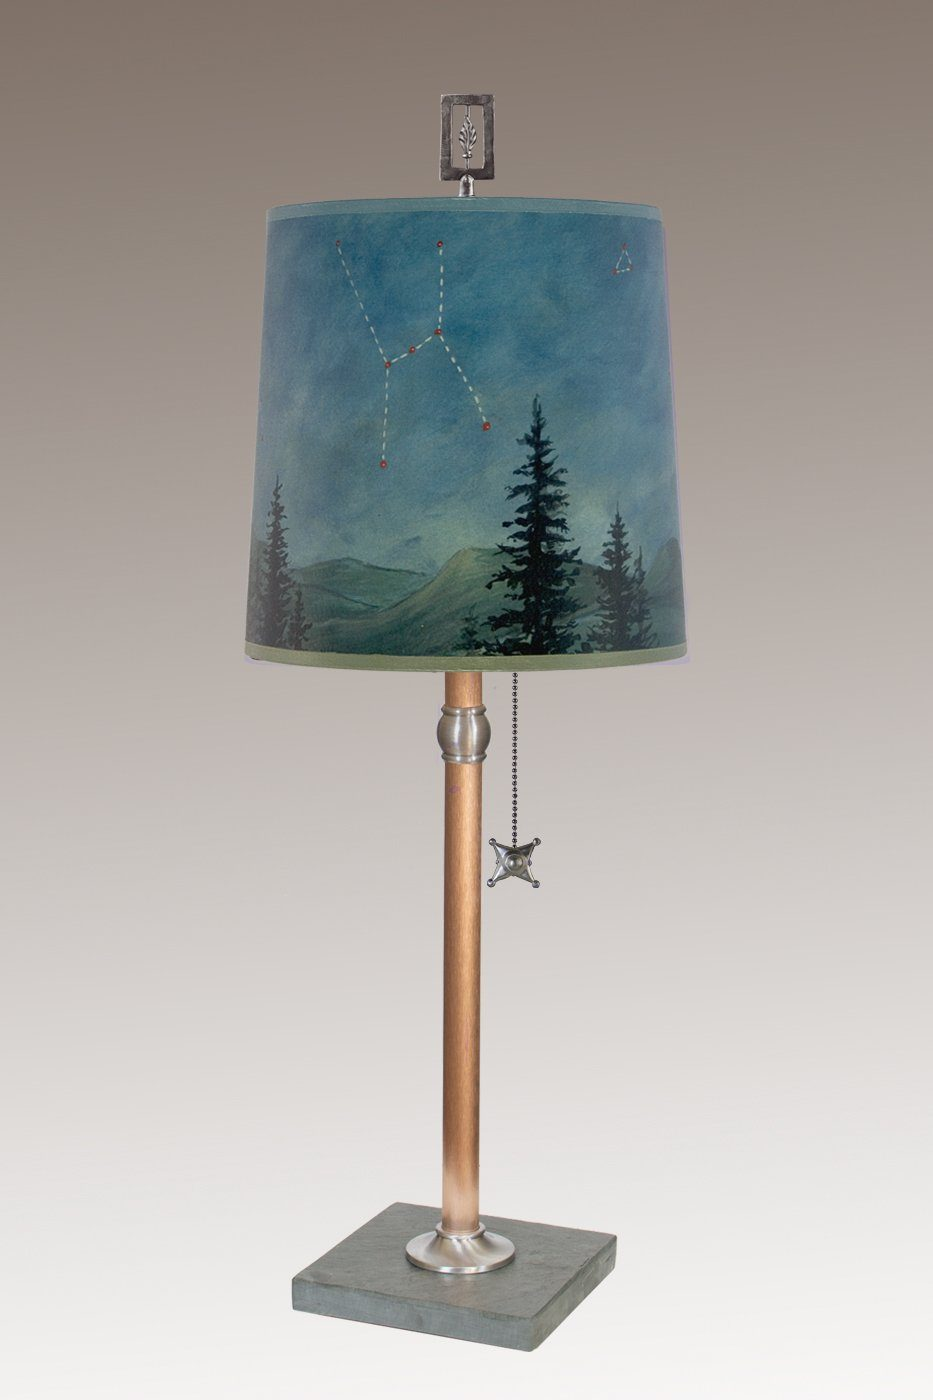 Copper Table Lamp with Medium Drum Shade in Midnight Sky